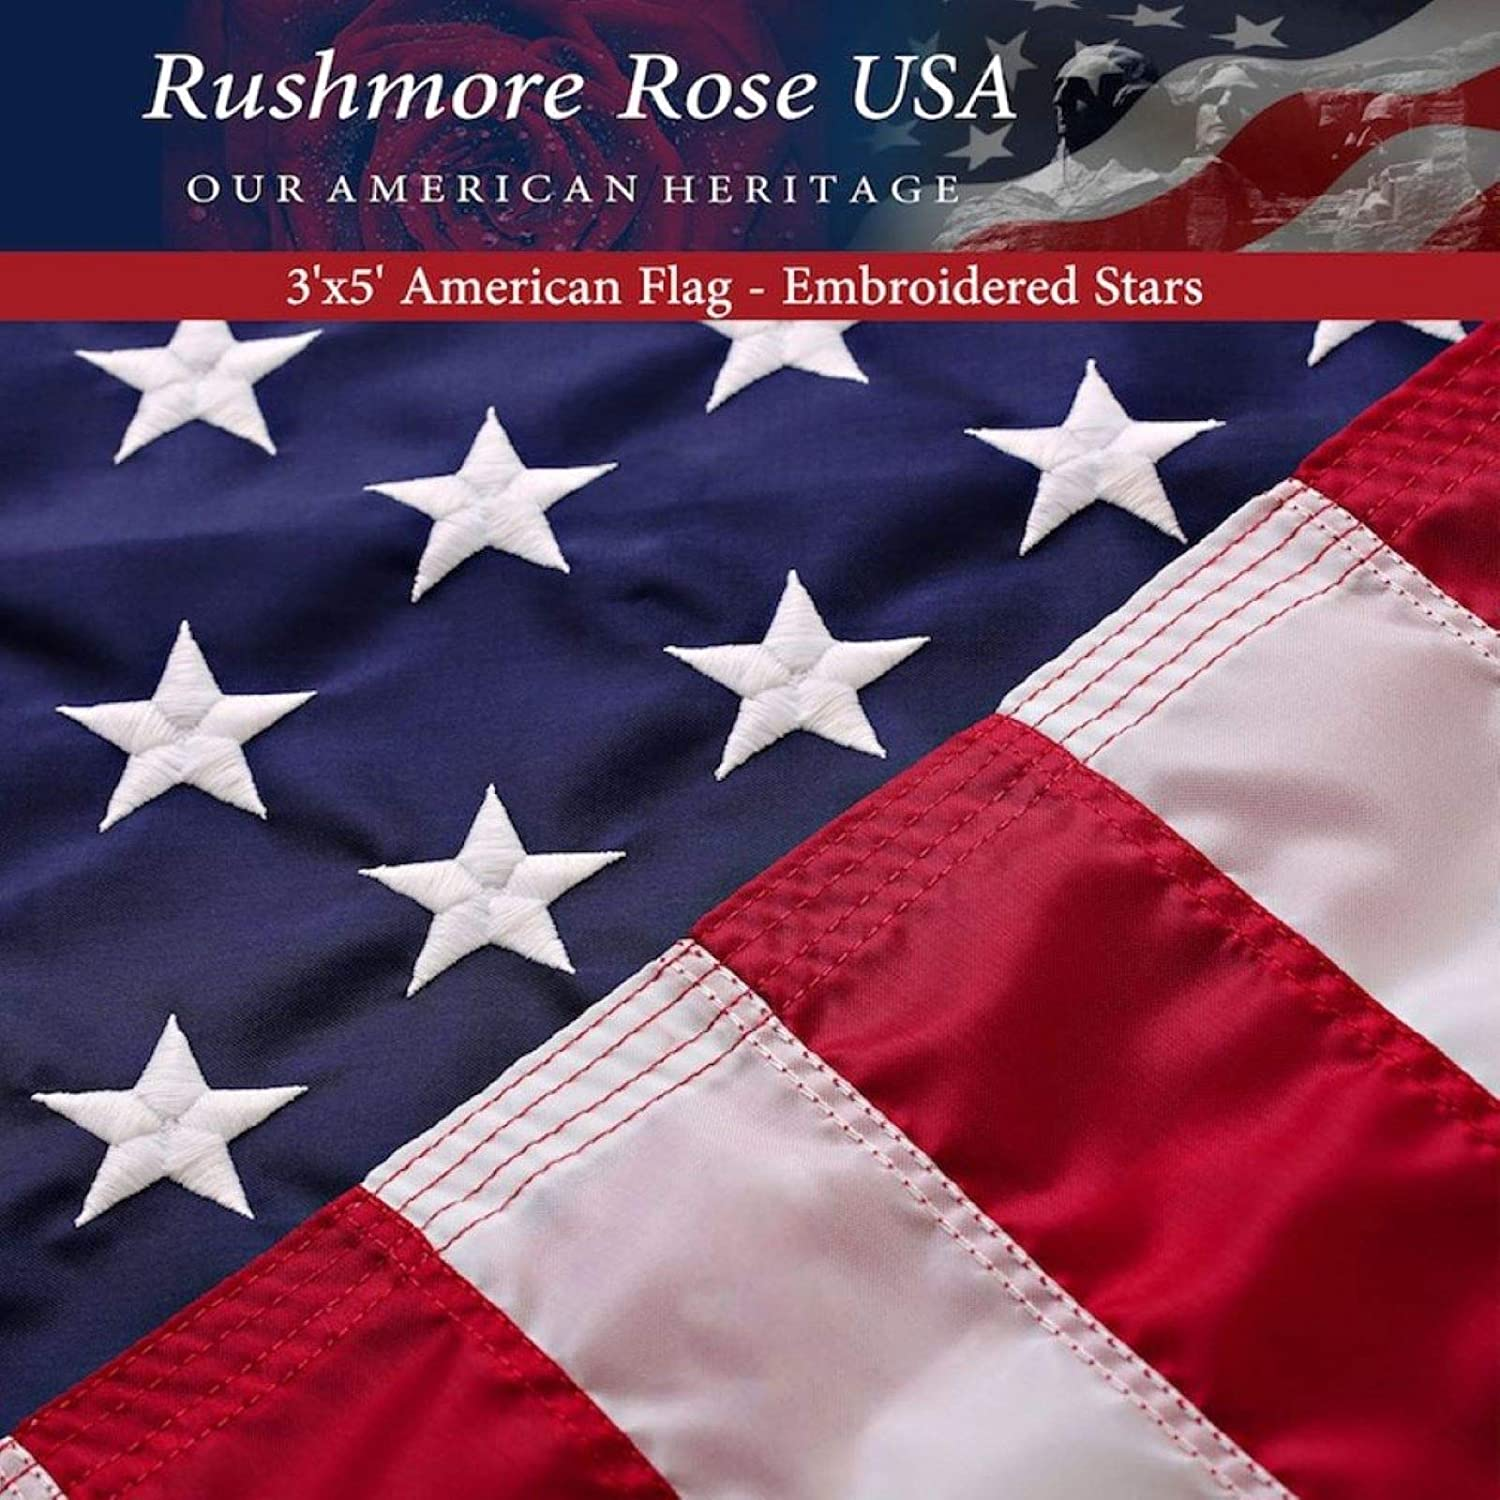 American Flag 3x5 - Made in USA. Premium US Flag. Embroidered Stars and Stripes - American Flags Made in America : Garden & Outdoor